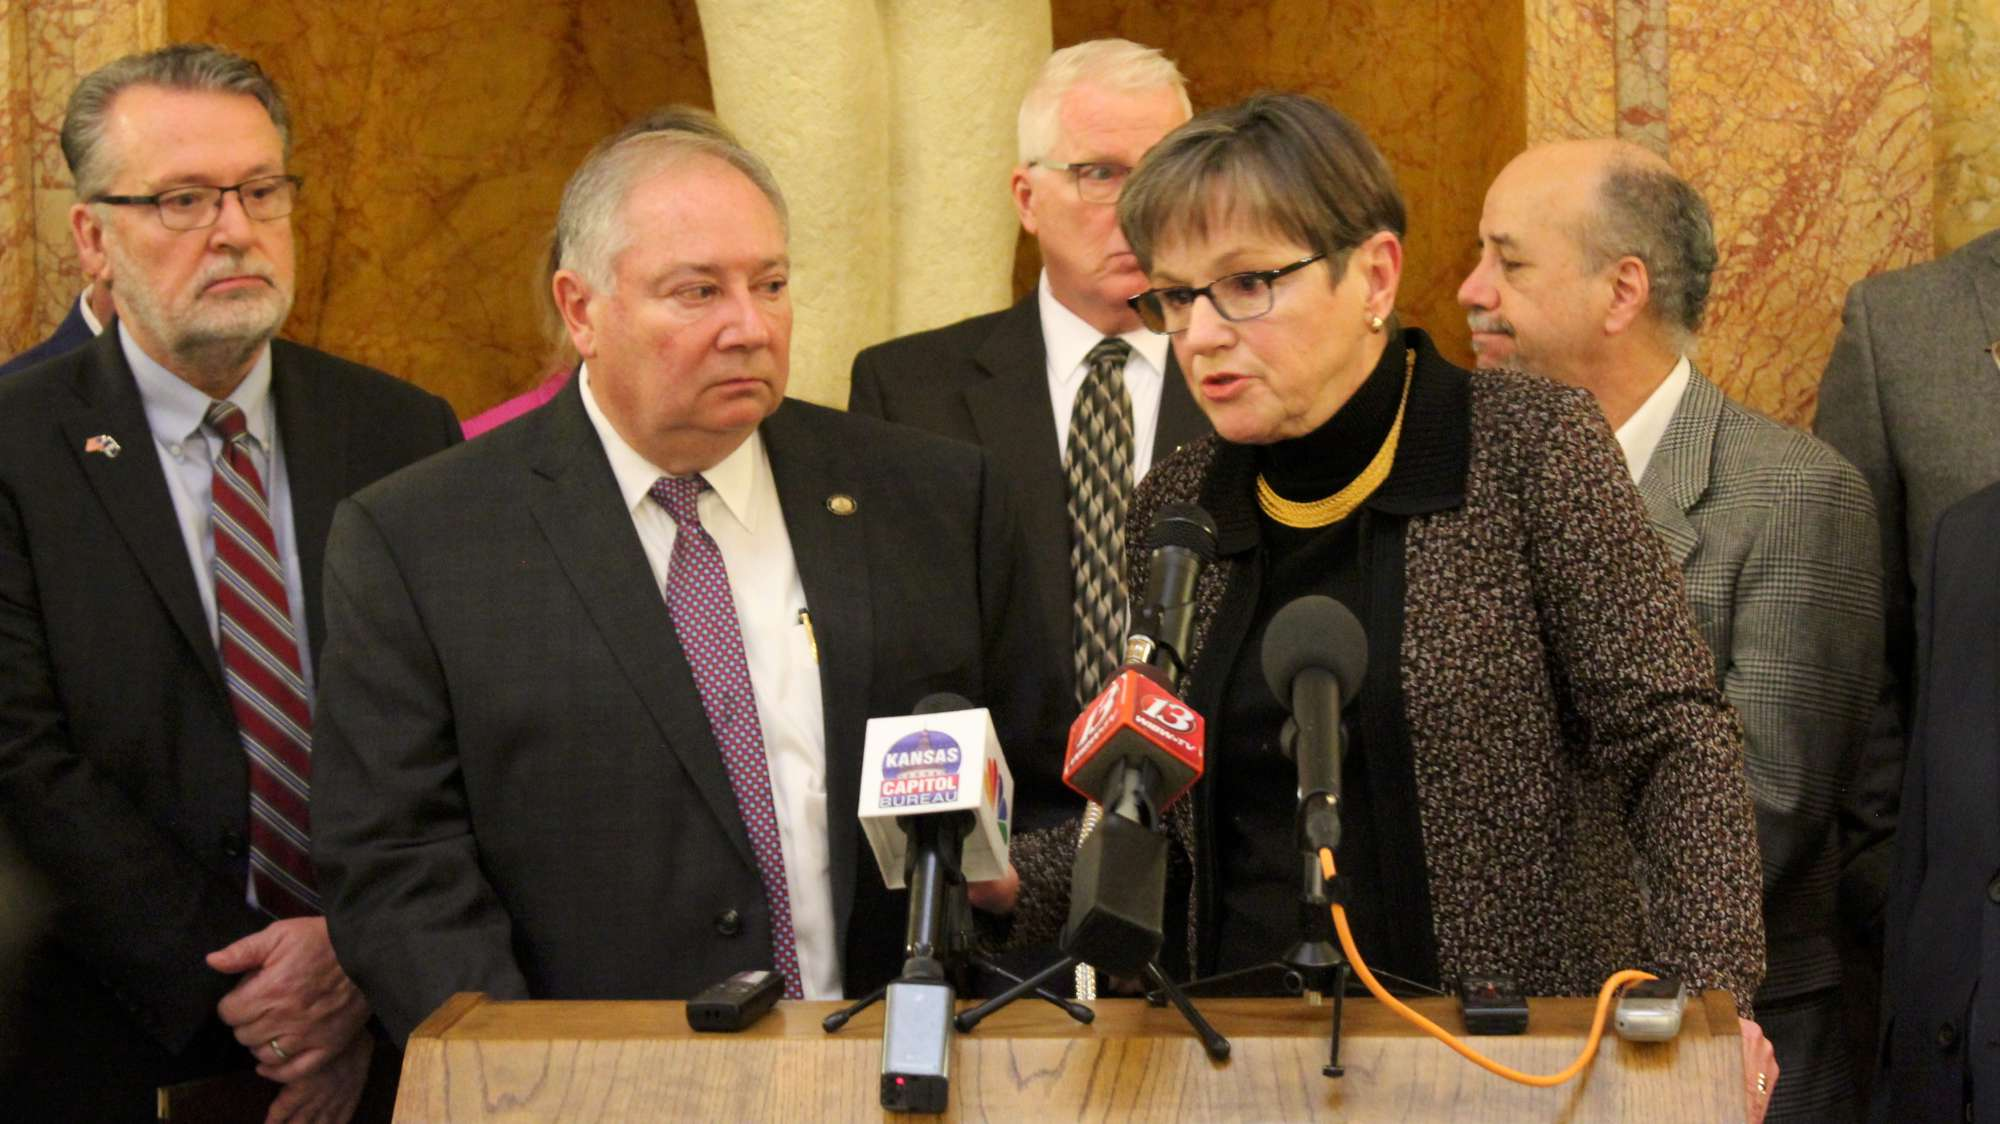 Gov. Laura Kelly and Senate Majority Leader Jim Denning announcing a Medicaid expansion compromise on Thursday. (Photo by Stephen Koranda)